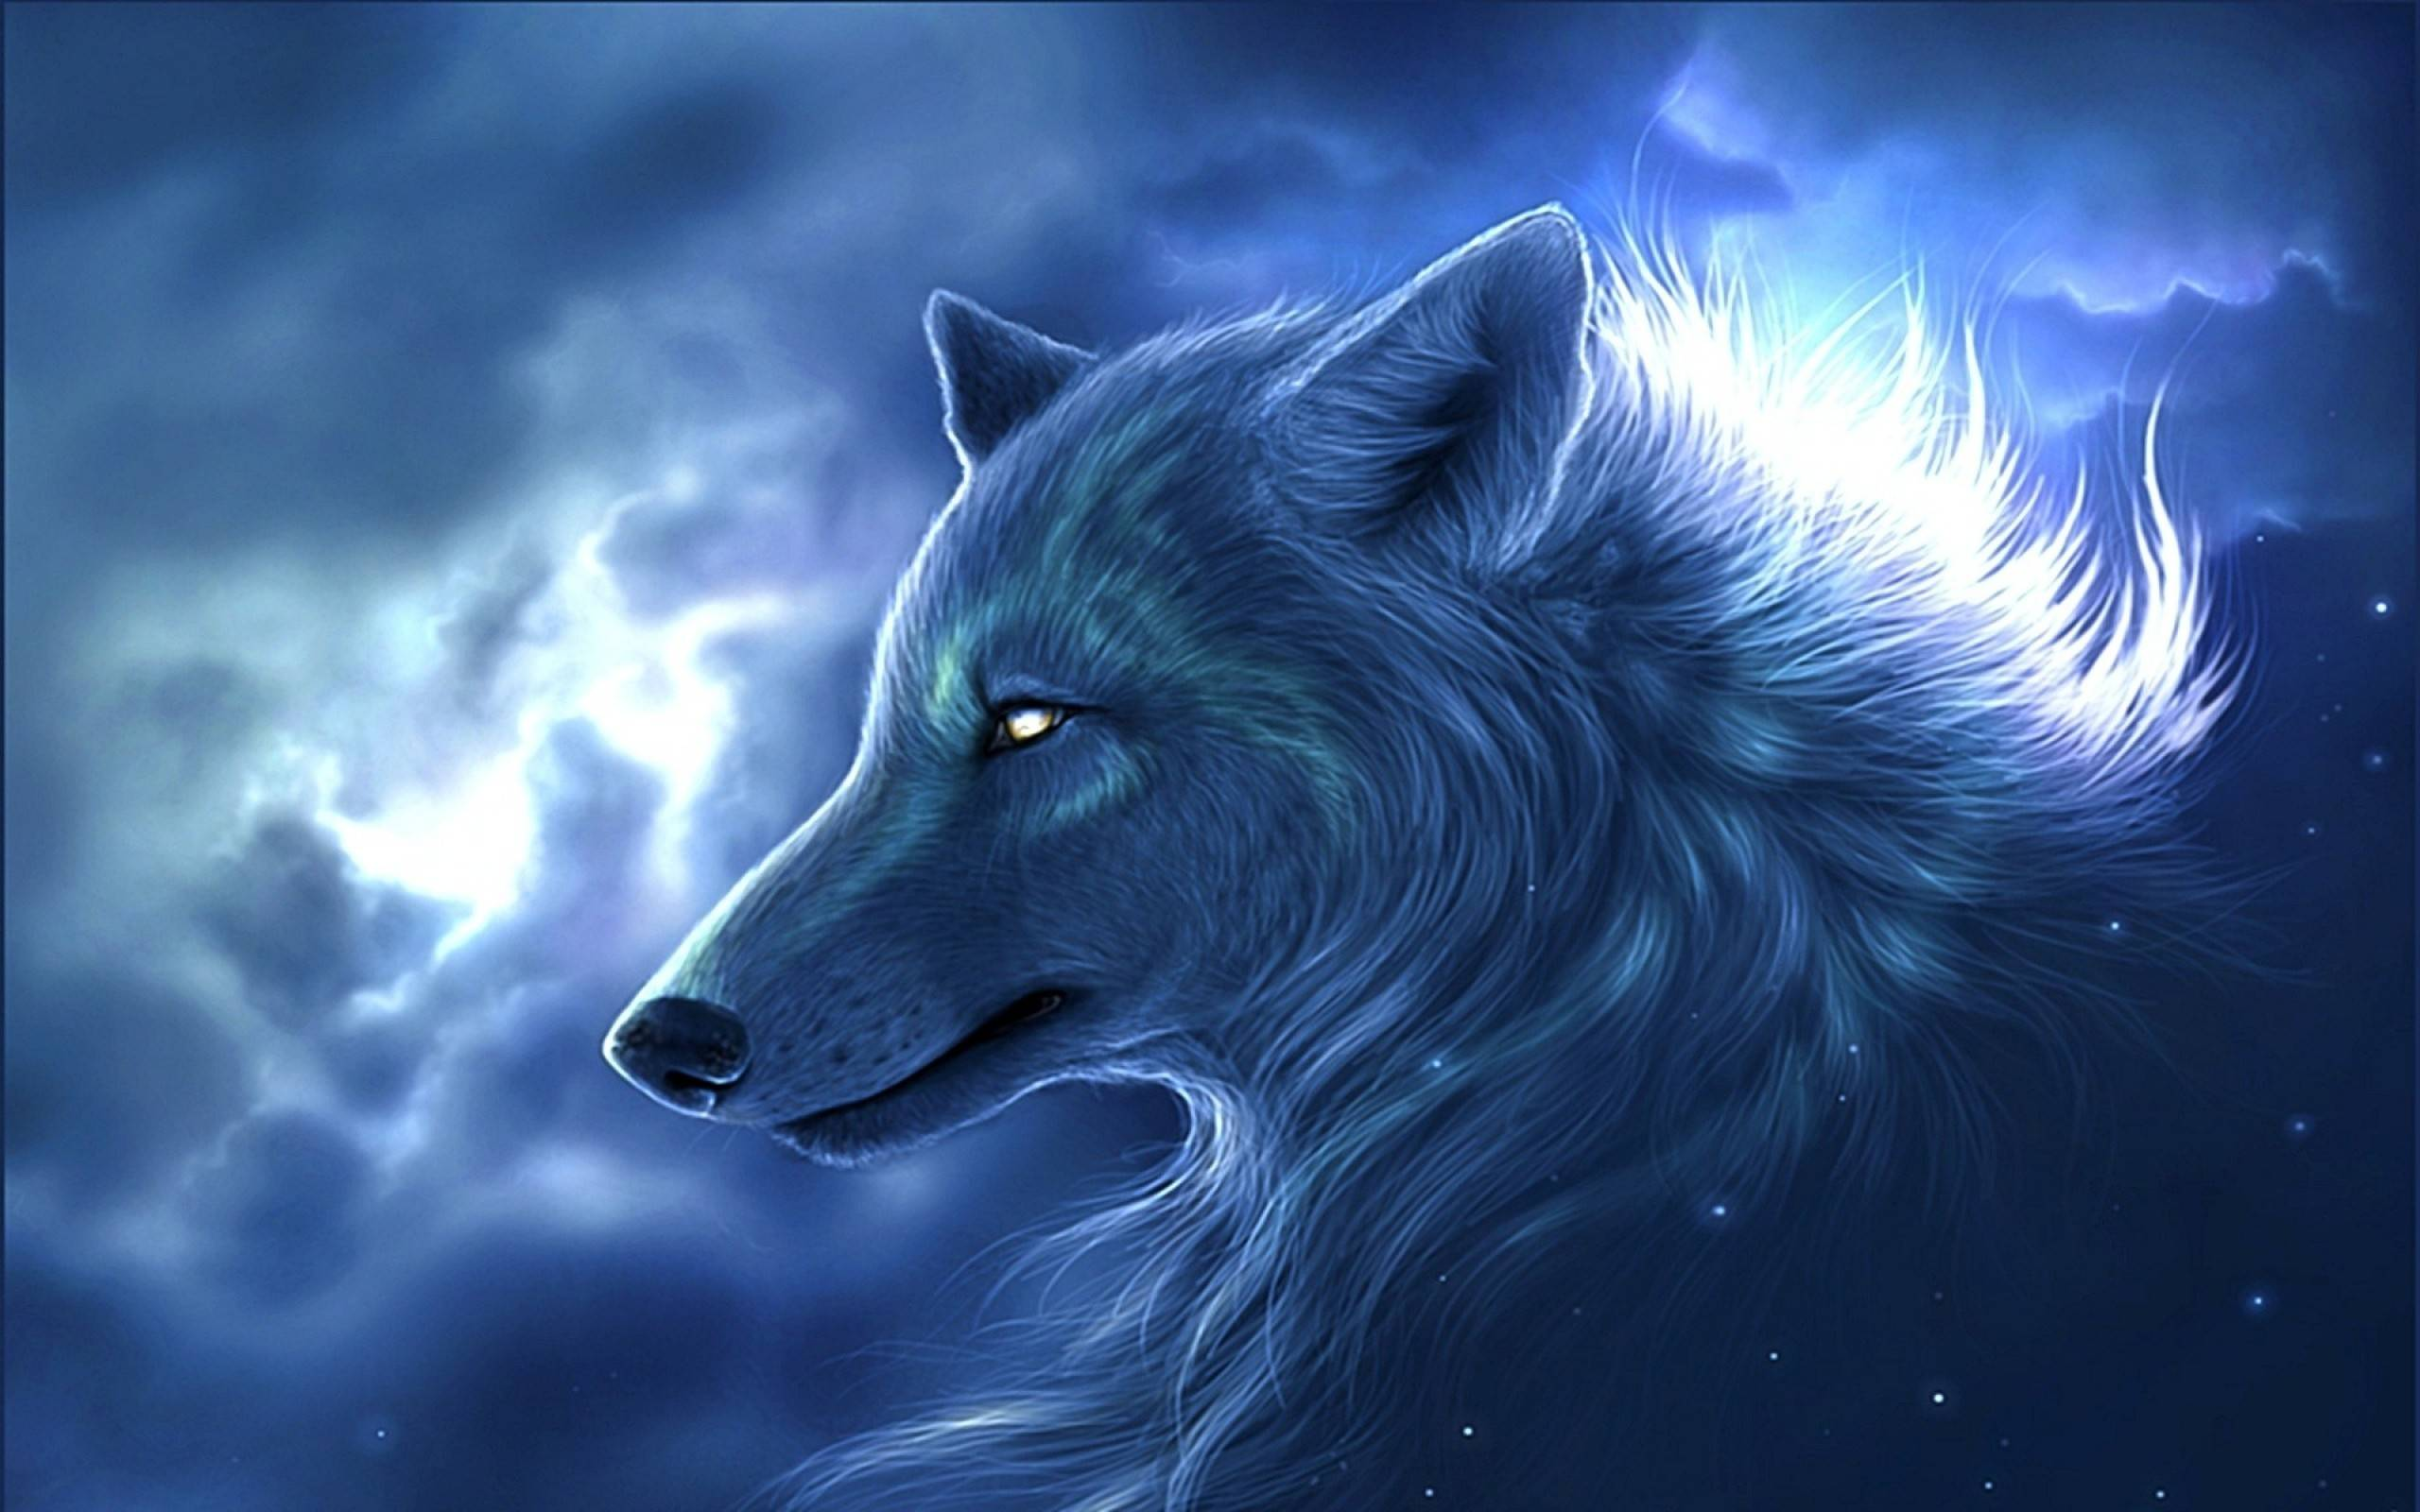 Blue Anime Wolf Wallpapers   Top Blue Anime Wolf Backgrounds 2560x1600